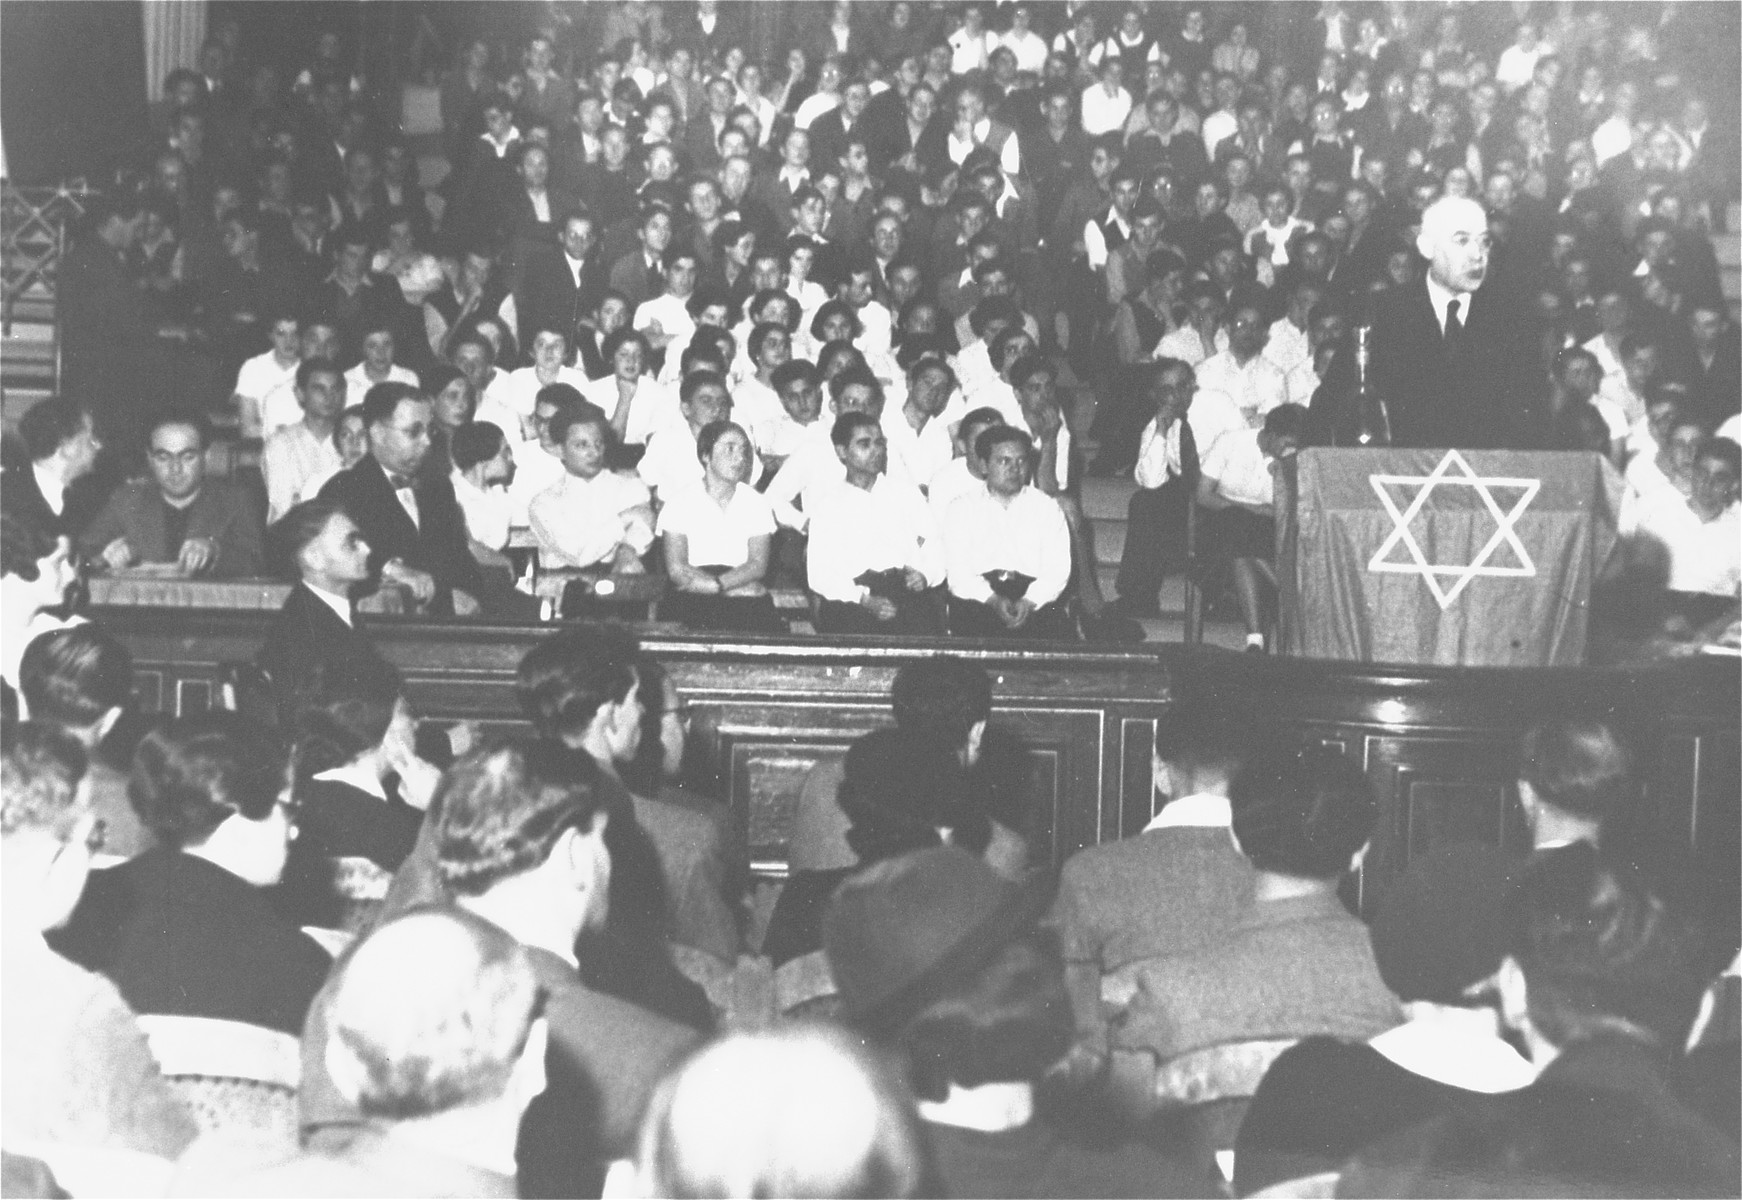 Rabbi Leo Baeck addresses a meeting of German Jews in a synagogue in Berlin.